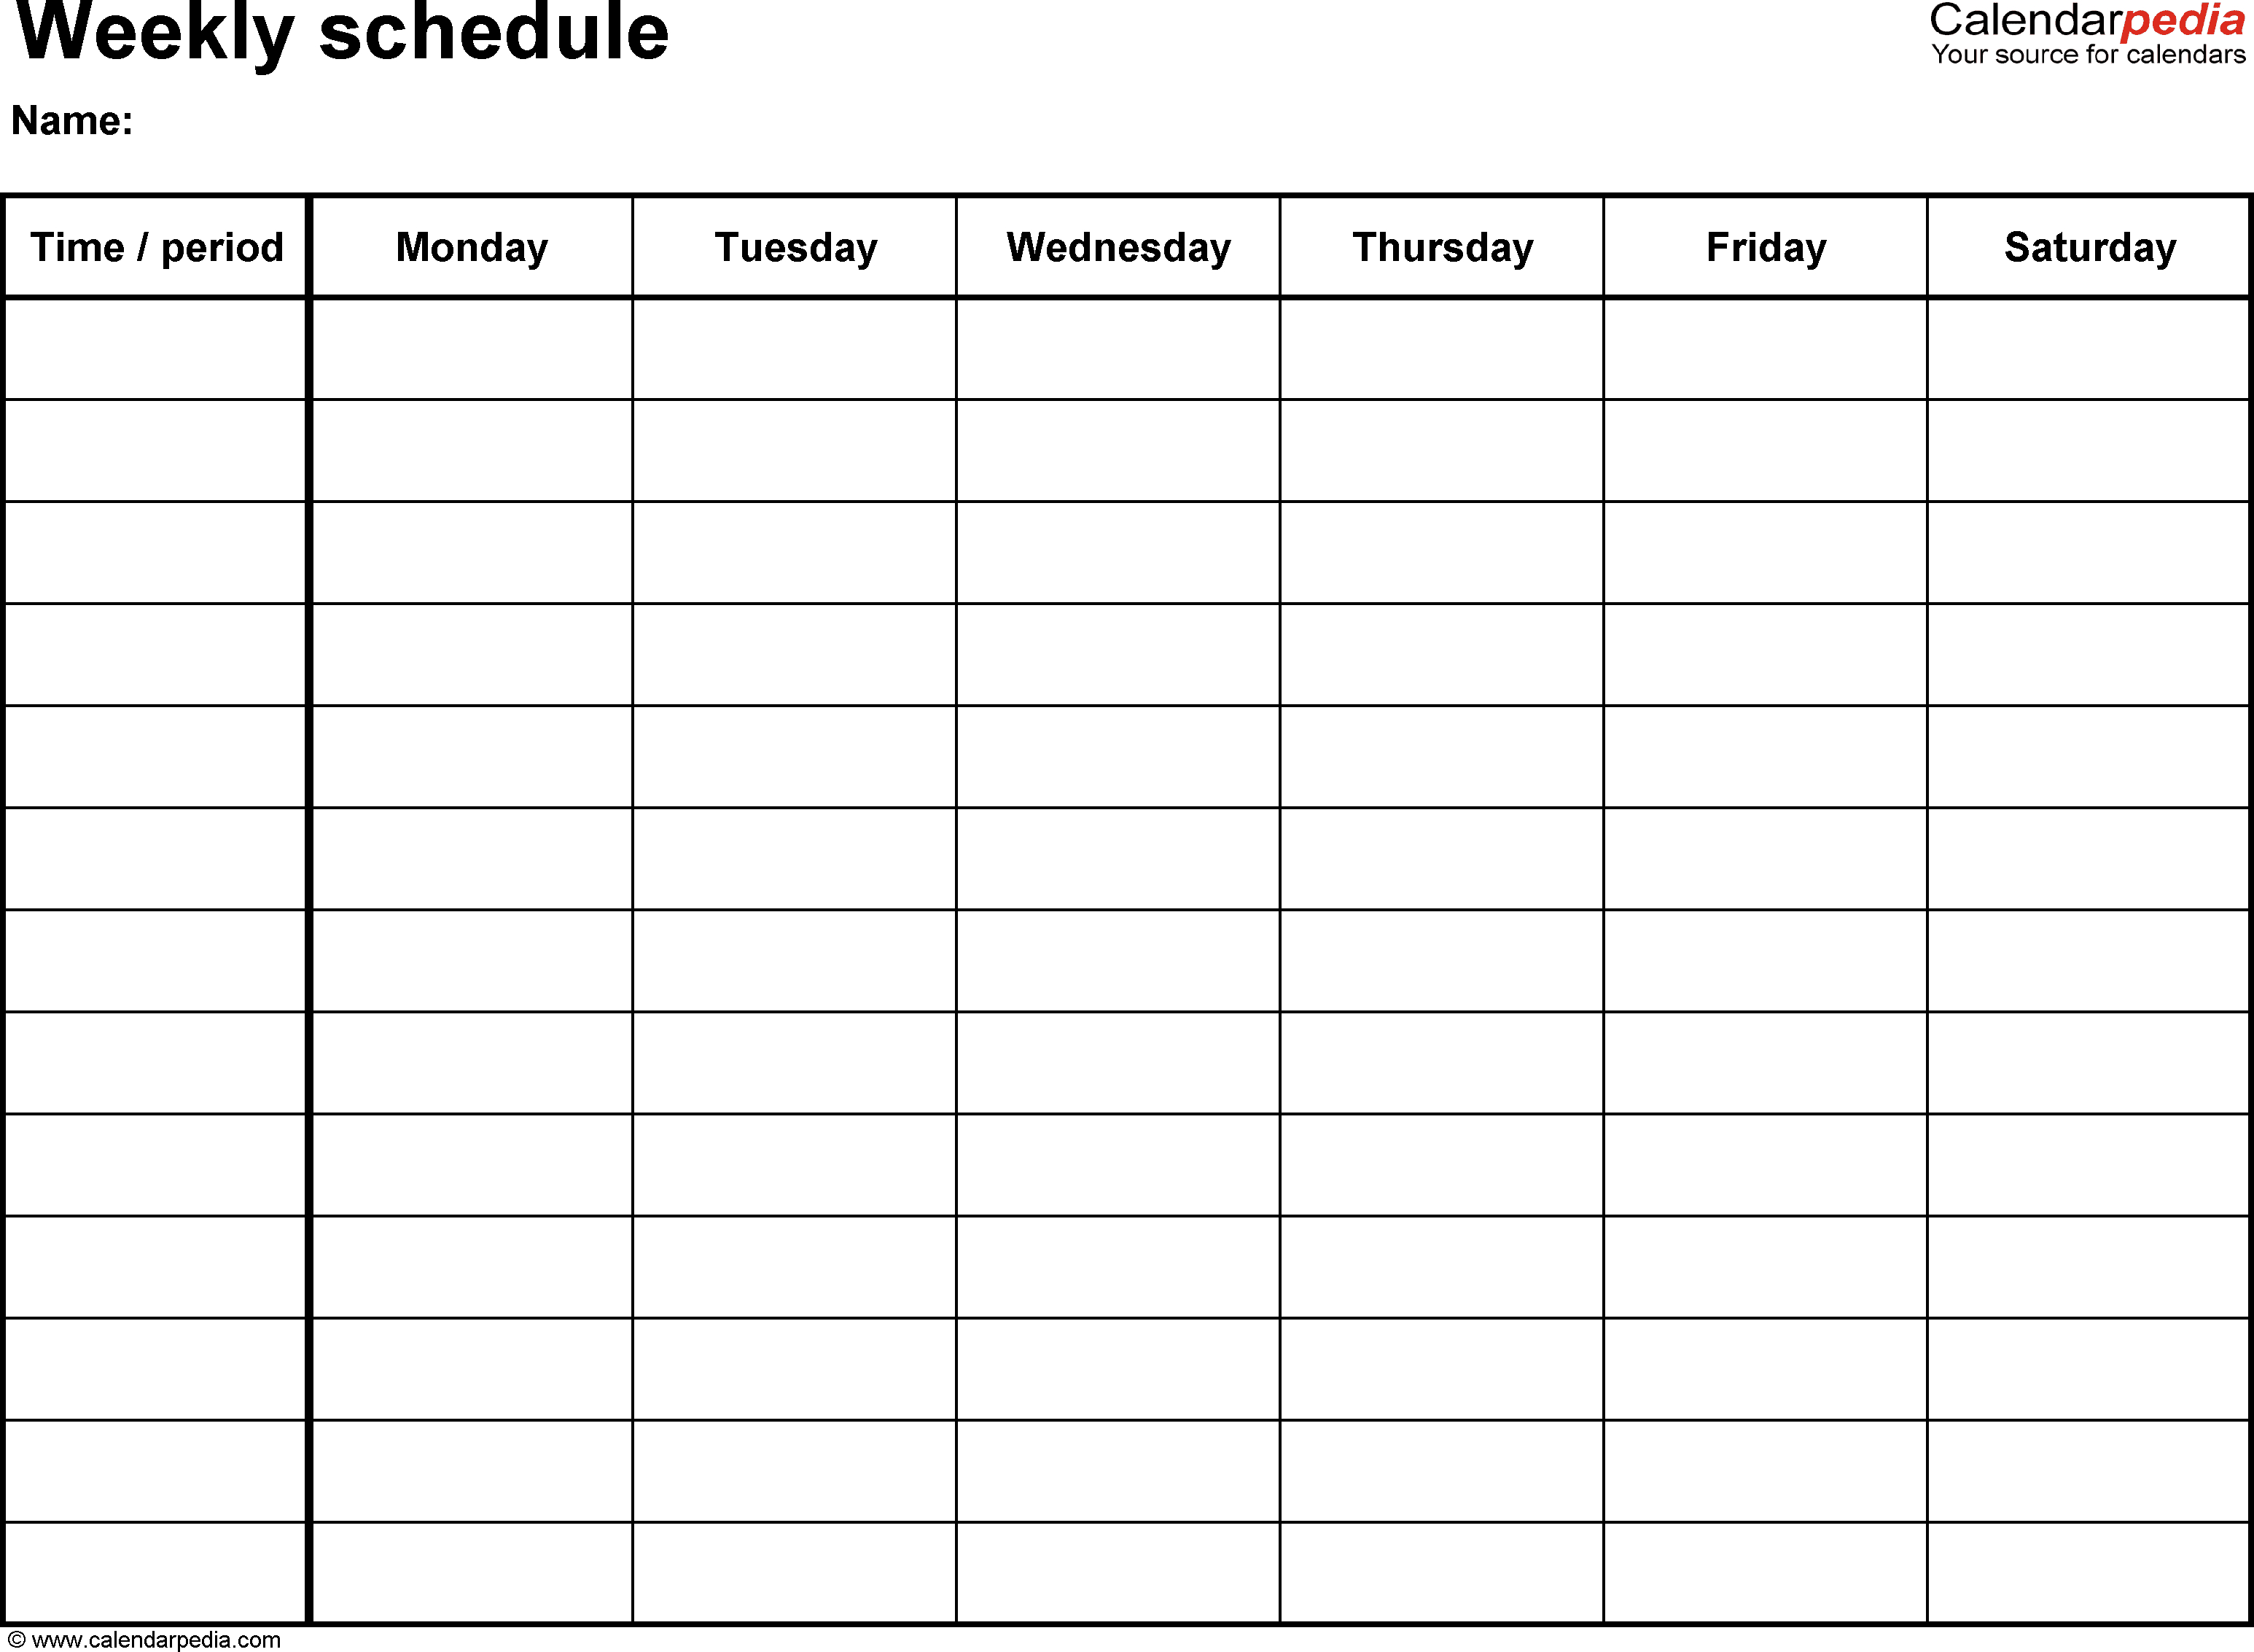 Free Weekly Schedule Templates For Excel - 18 Templates in 2 Week Work Schedule Templates